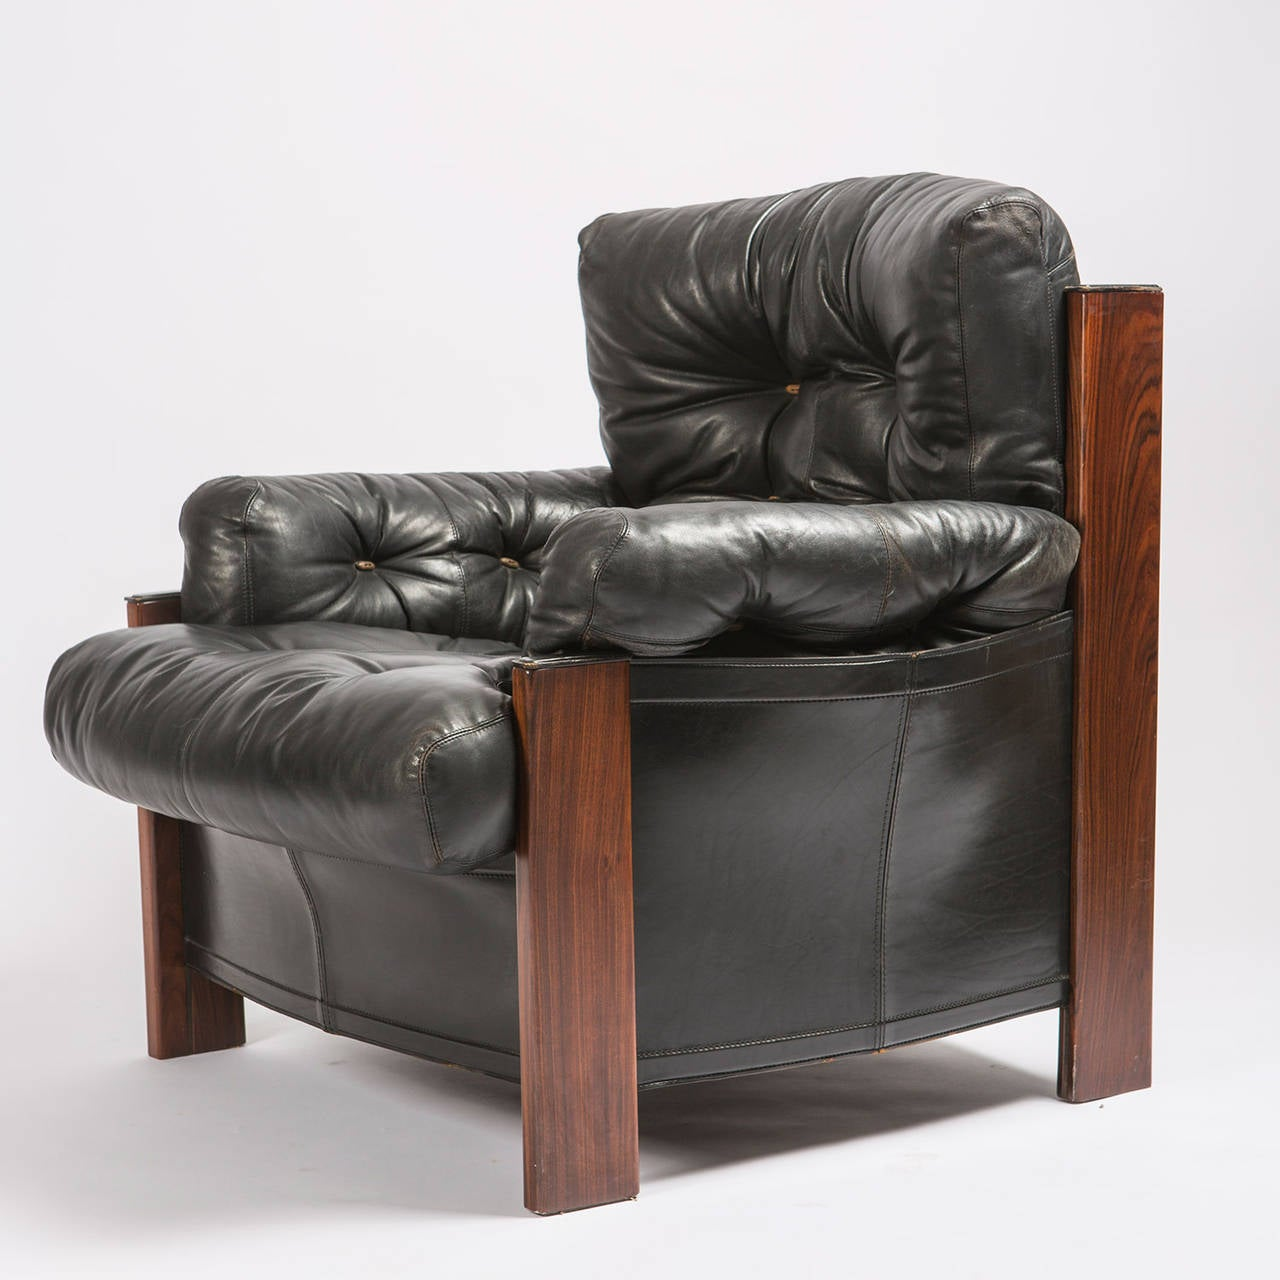 leather bergere chair and ottoman office chairs canada quotbergere quot lounge with by scarpa for artona